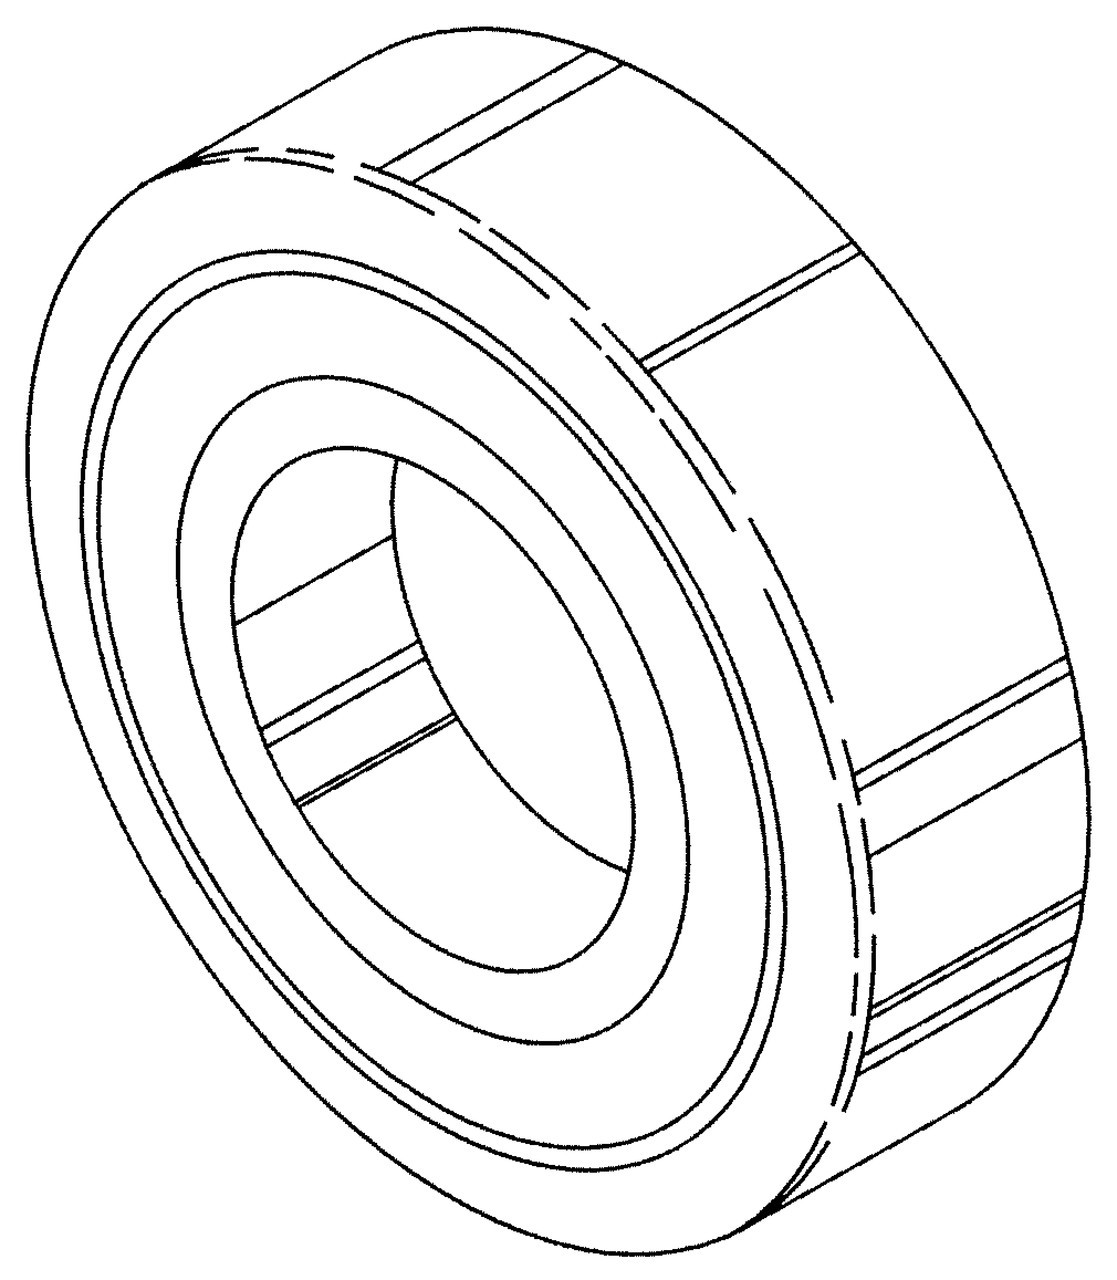 Butcher Boy SA30 & SA36 - Lower Main Bearing (Roller) Rear - 90313 - BB159